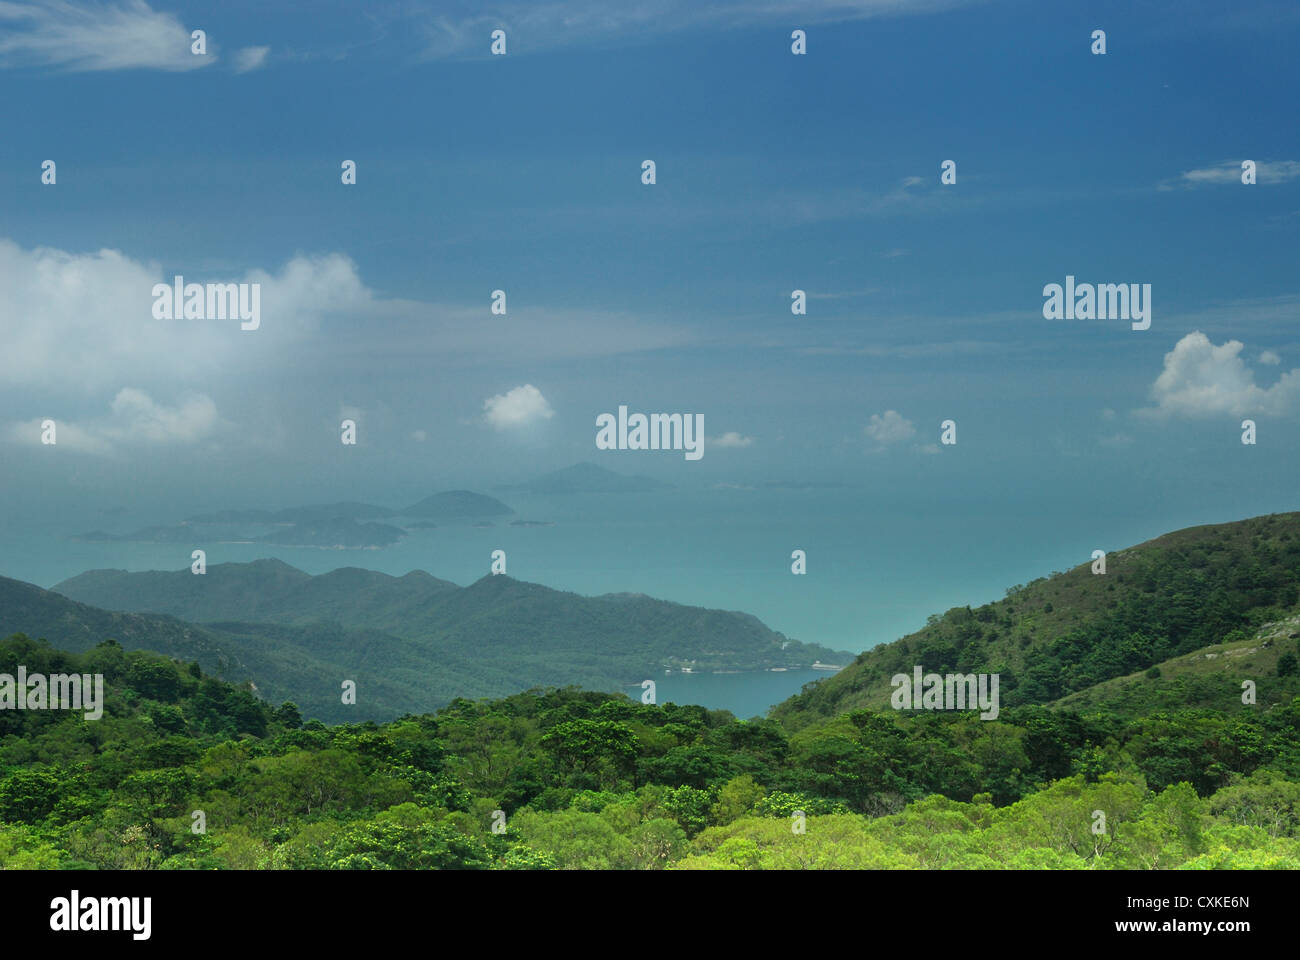 Southerly view from Ngong Ping across Lantau Country Park towards the Soko Islands in the South China Sea. - Stock Image